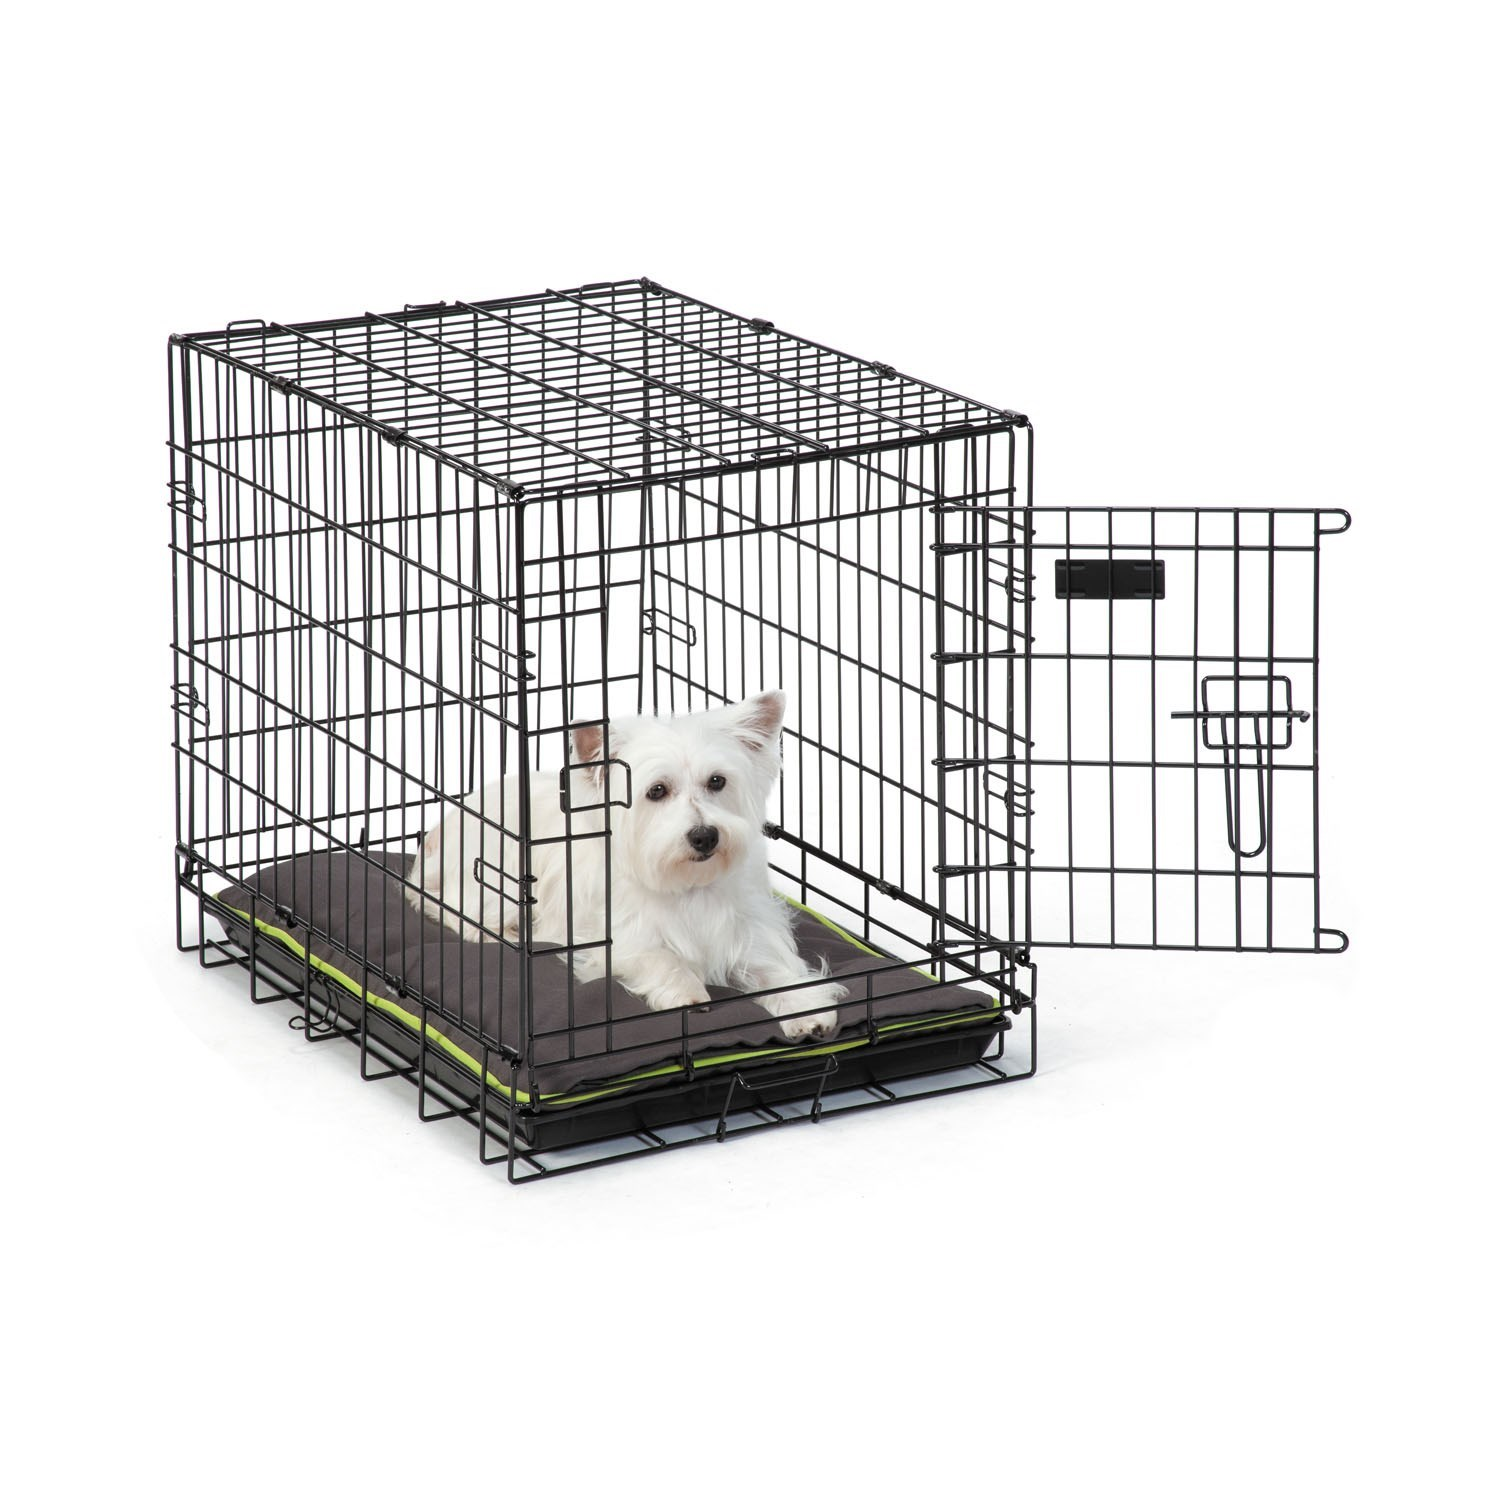 mw rubber supplies dog carriers midwest maddies crates crate mats online mat cushioned